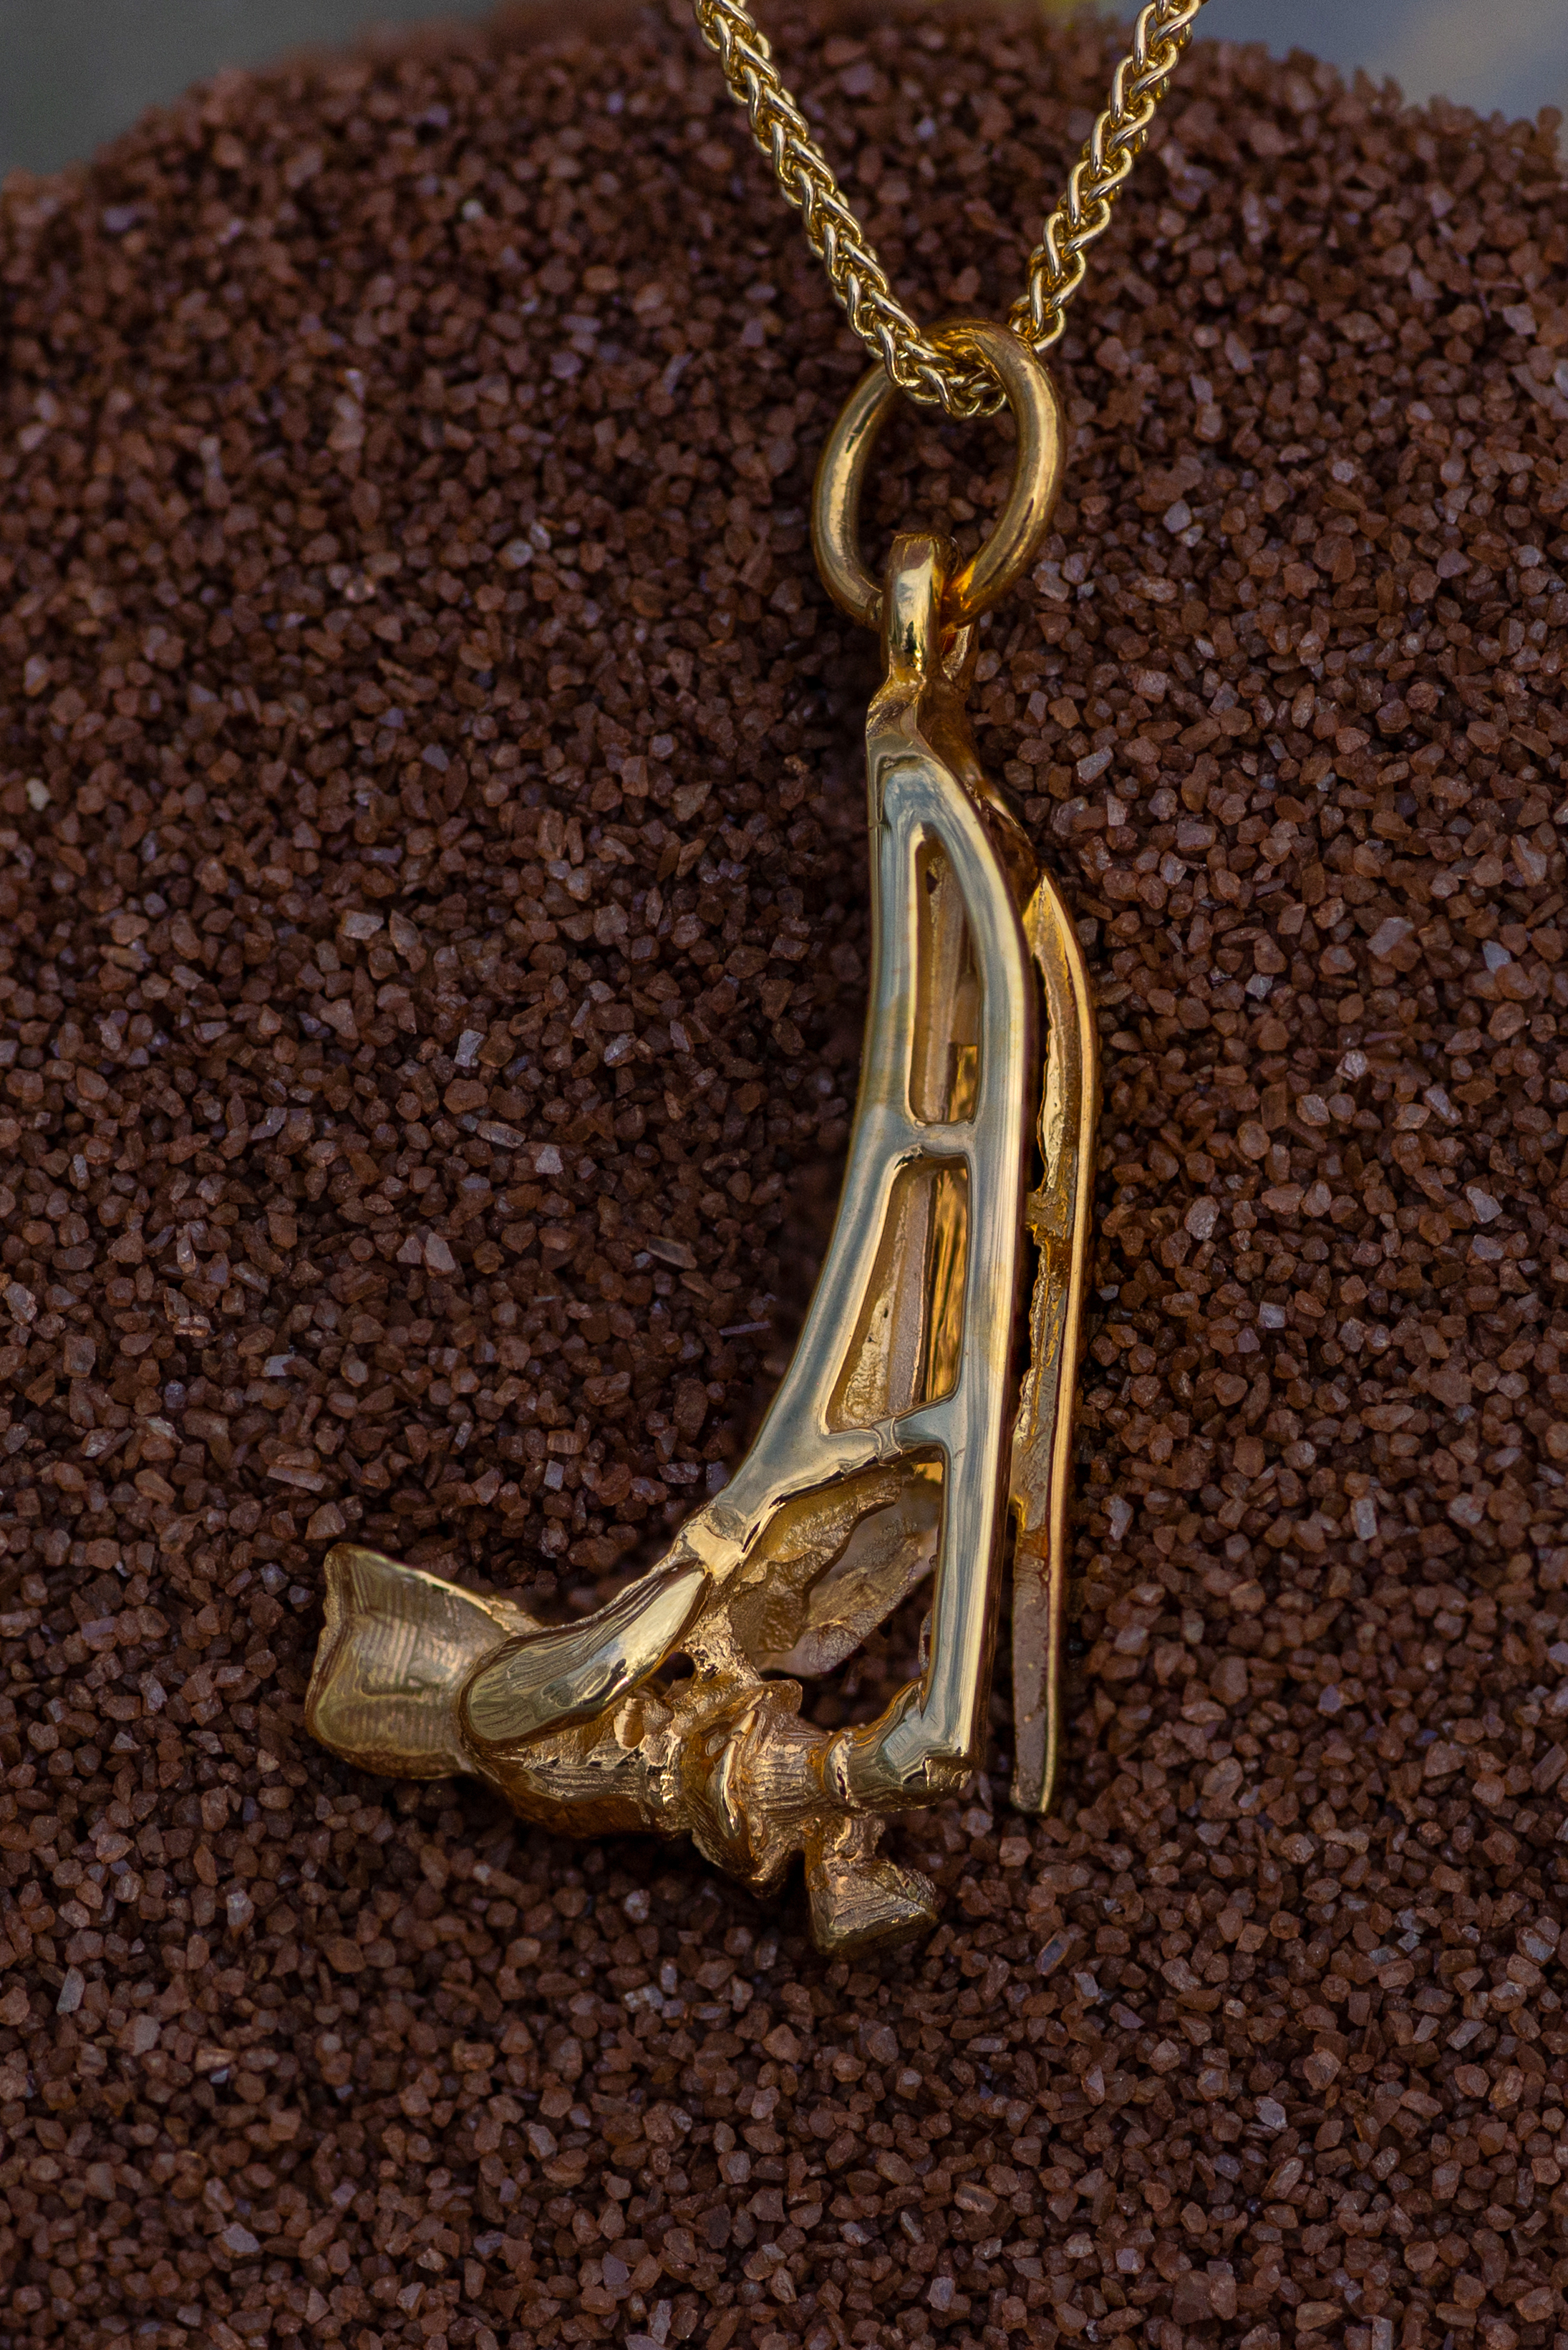 Wild Alaska Musher Pendant Crafted in 14kt Yellow Gold